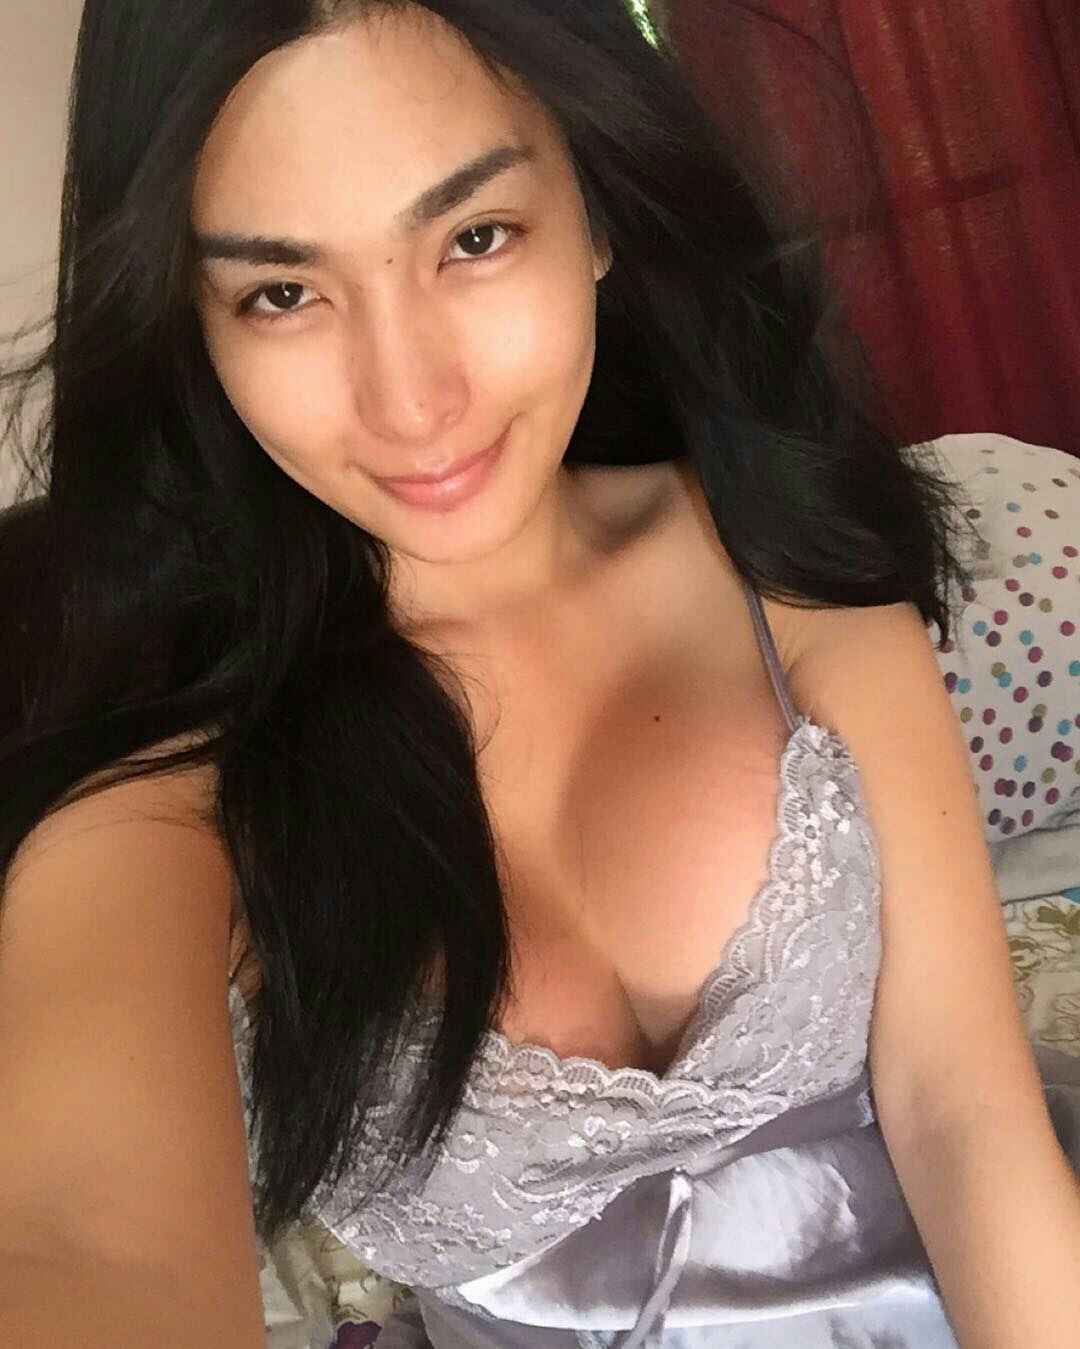 Filipina older woman seductive pictures